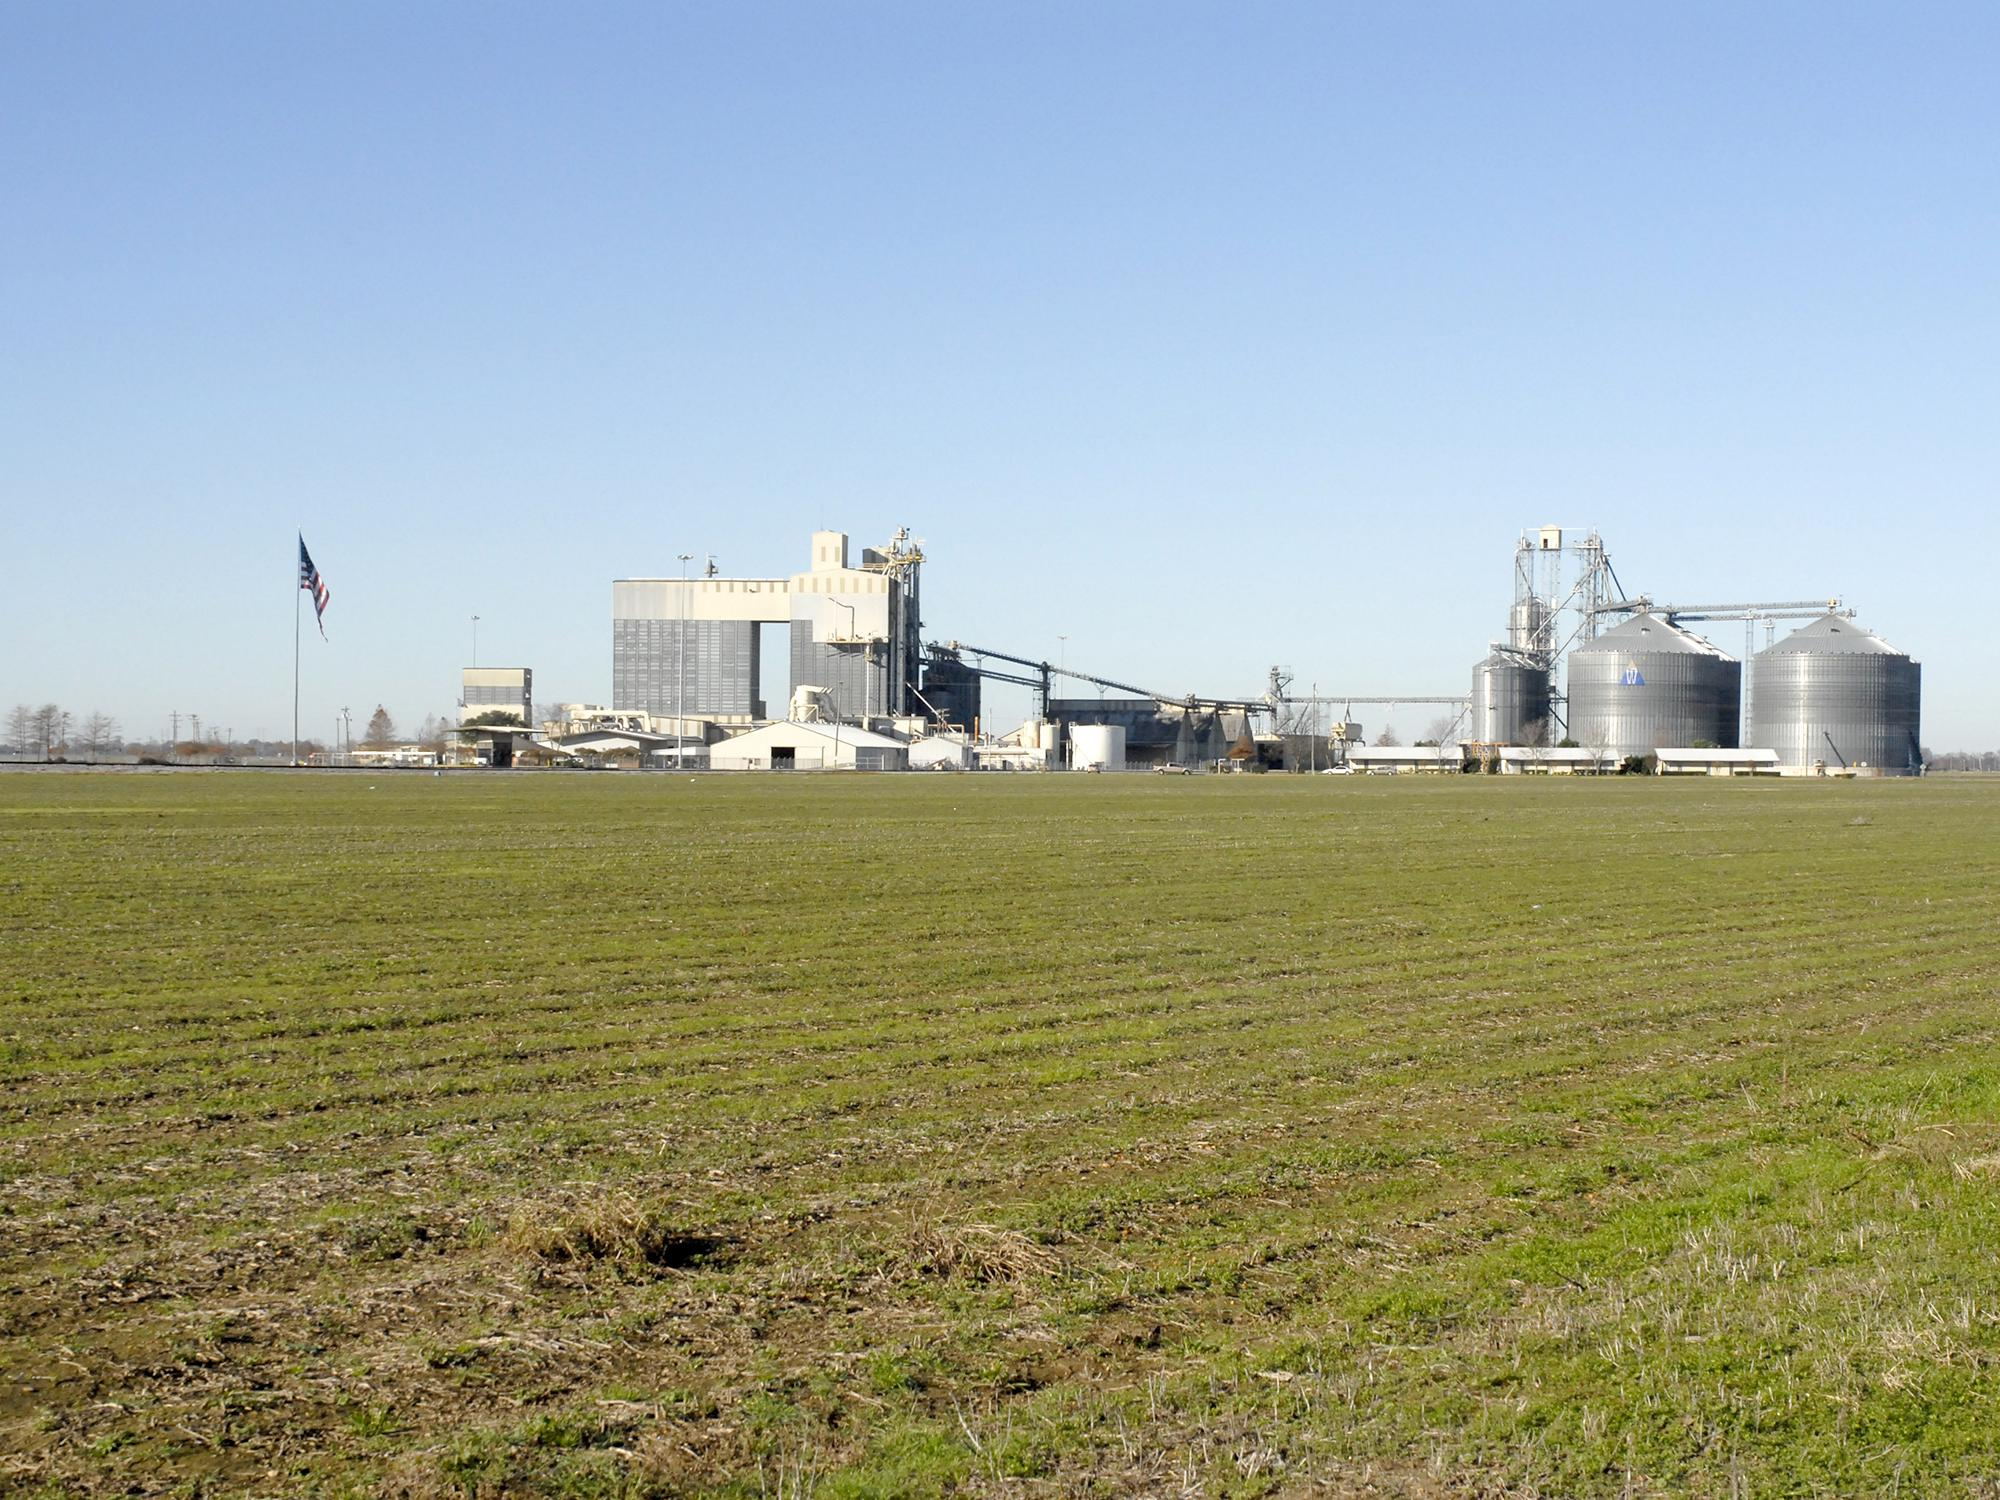 Storage facilities, such as this grain elevator in Sunflower County seen on Dec. 15, 2015, are busy as Mississippi's 2015 harvest is complete. Agriculture brought an estimated value of $7.4 billion to the state. (Photo by MSU Extension Service/Bonnie Coblentz)